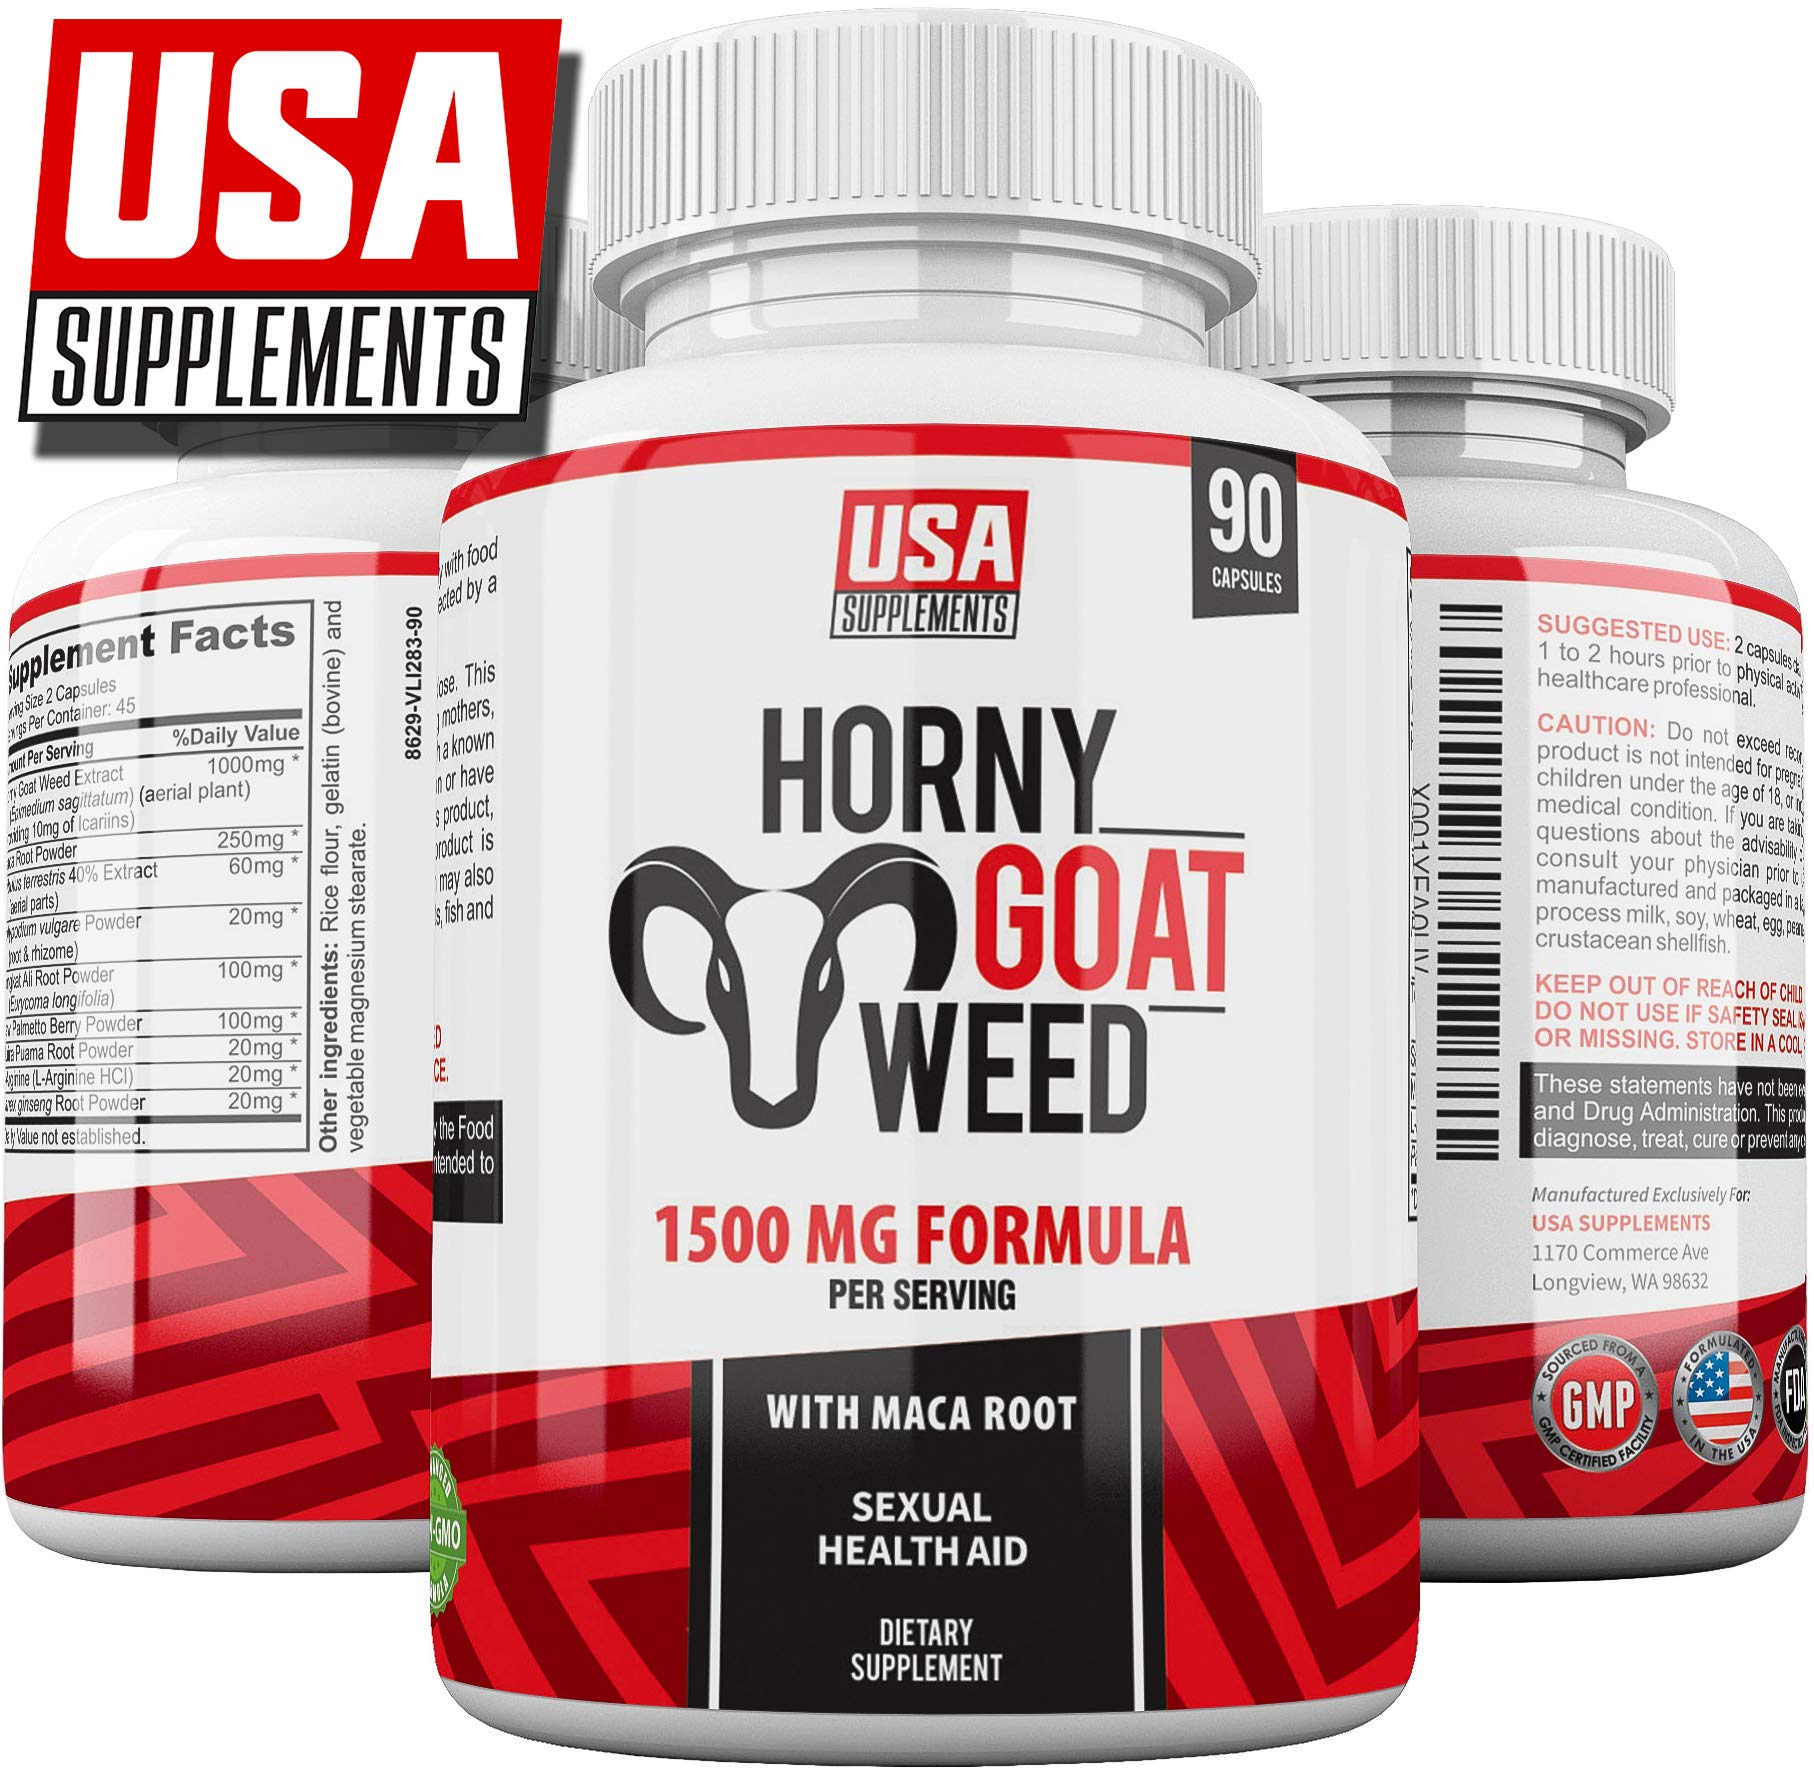 Horny Goat Weed for Men & Women | 1500mg Epimedium Pills, Maca Arginine & Ginseng | Naturally Boost Sexual Health, Libido, Stamina, Endurance, Testosterone & Energy | HGW Enhancing Premium Capsules